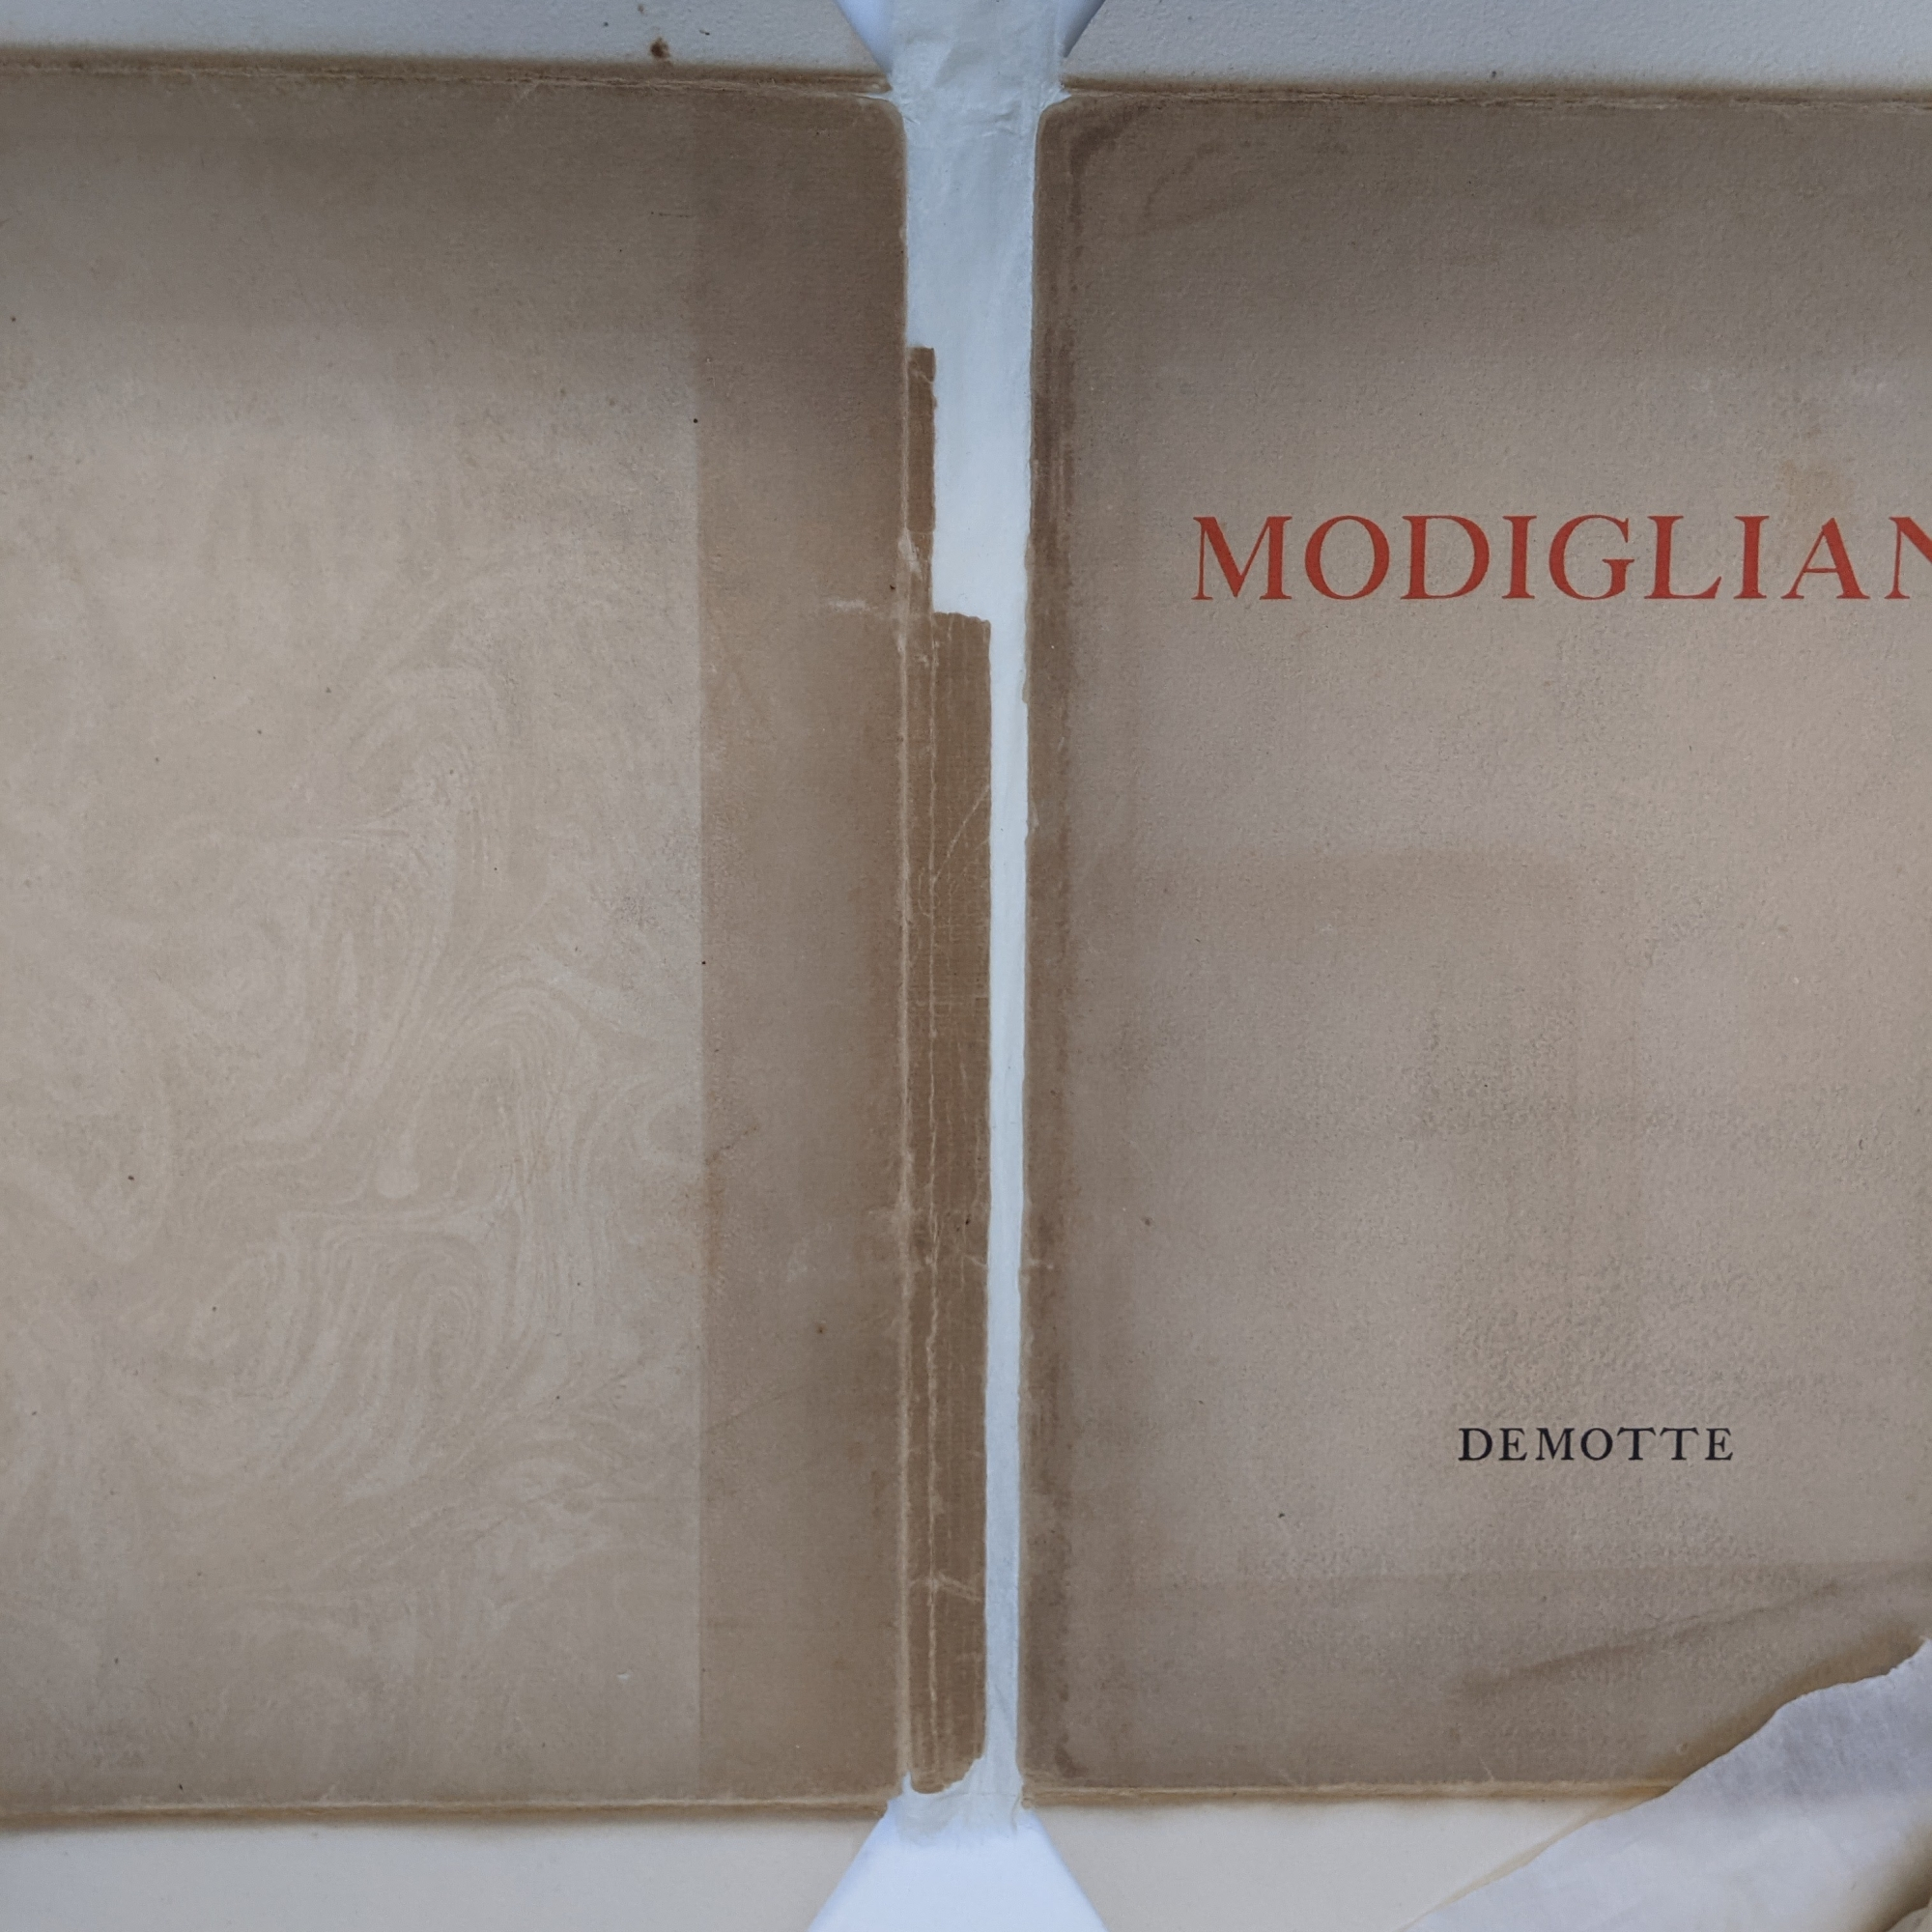 The dust jacket lies opened flat face up. A layer of thin Japanese paper has been adhered from the inside to reattach the two sides of the cover.